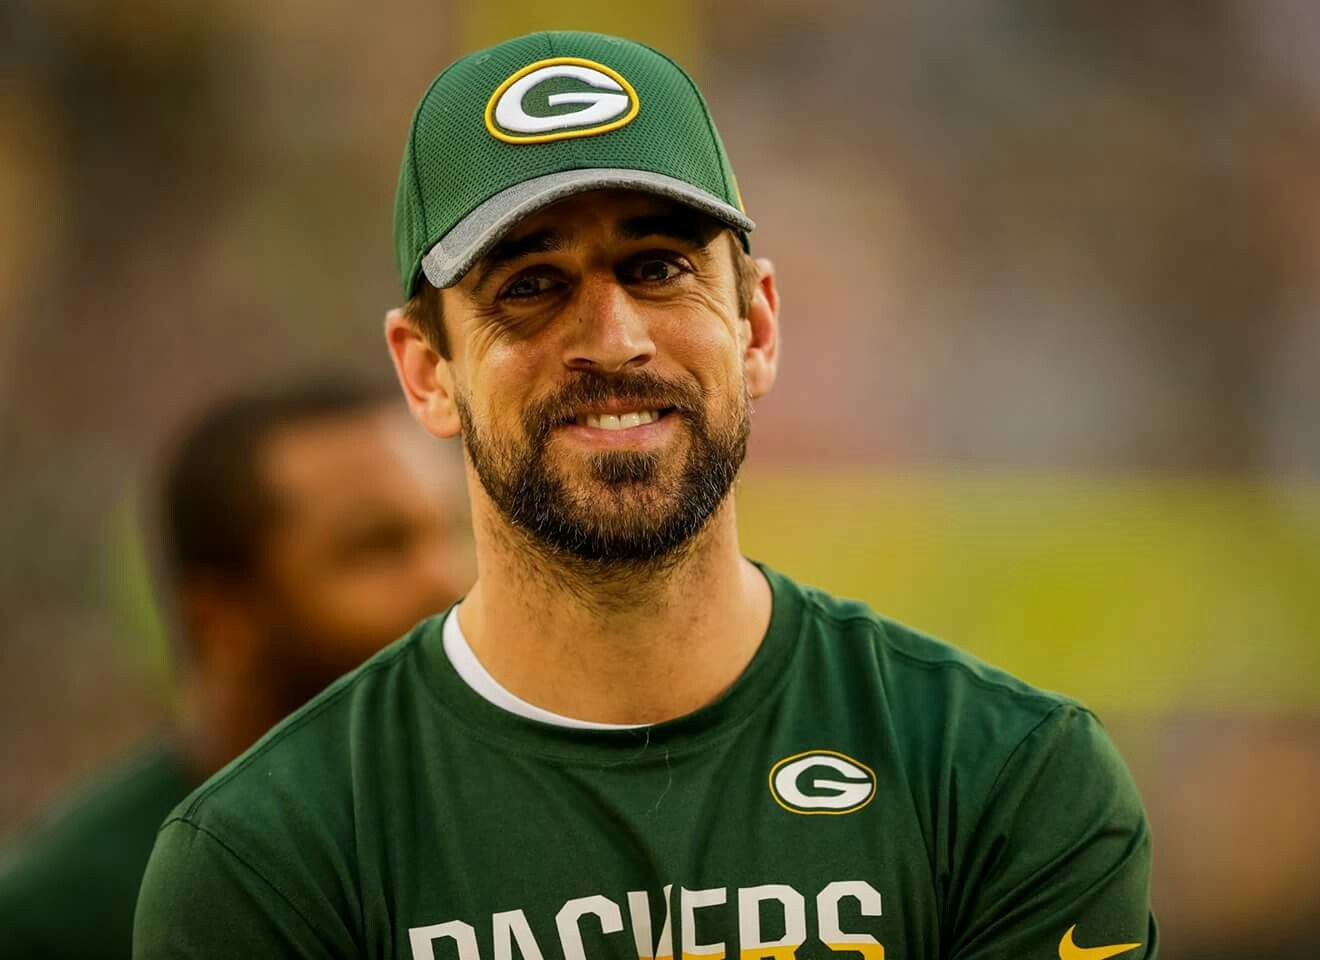 Pin By Becca Johnson On Packers Rodgers Green Bay Aaron Rodgers Green Bay